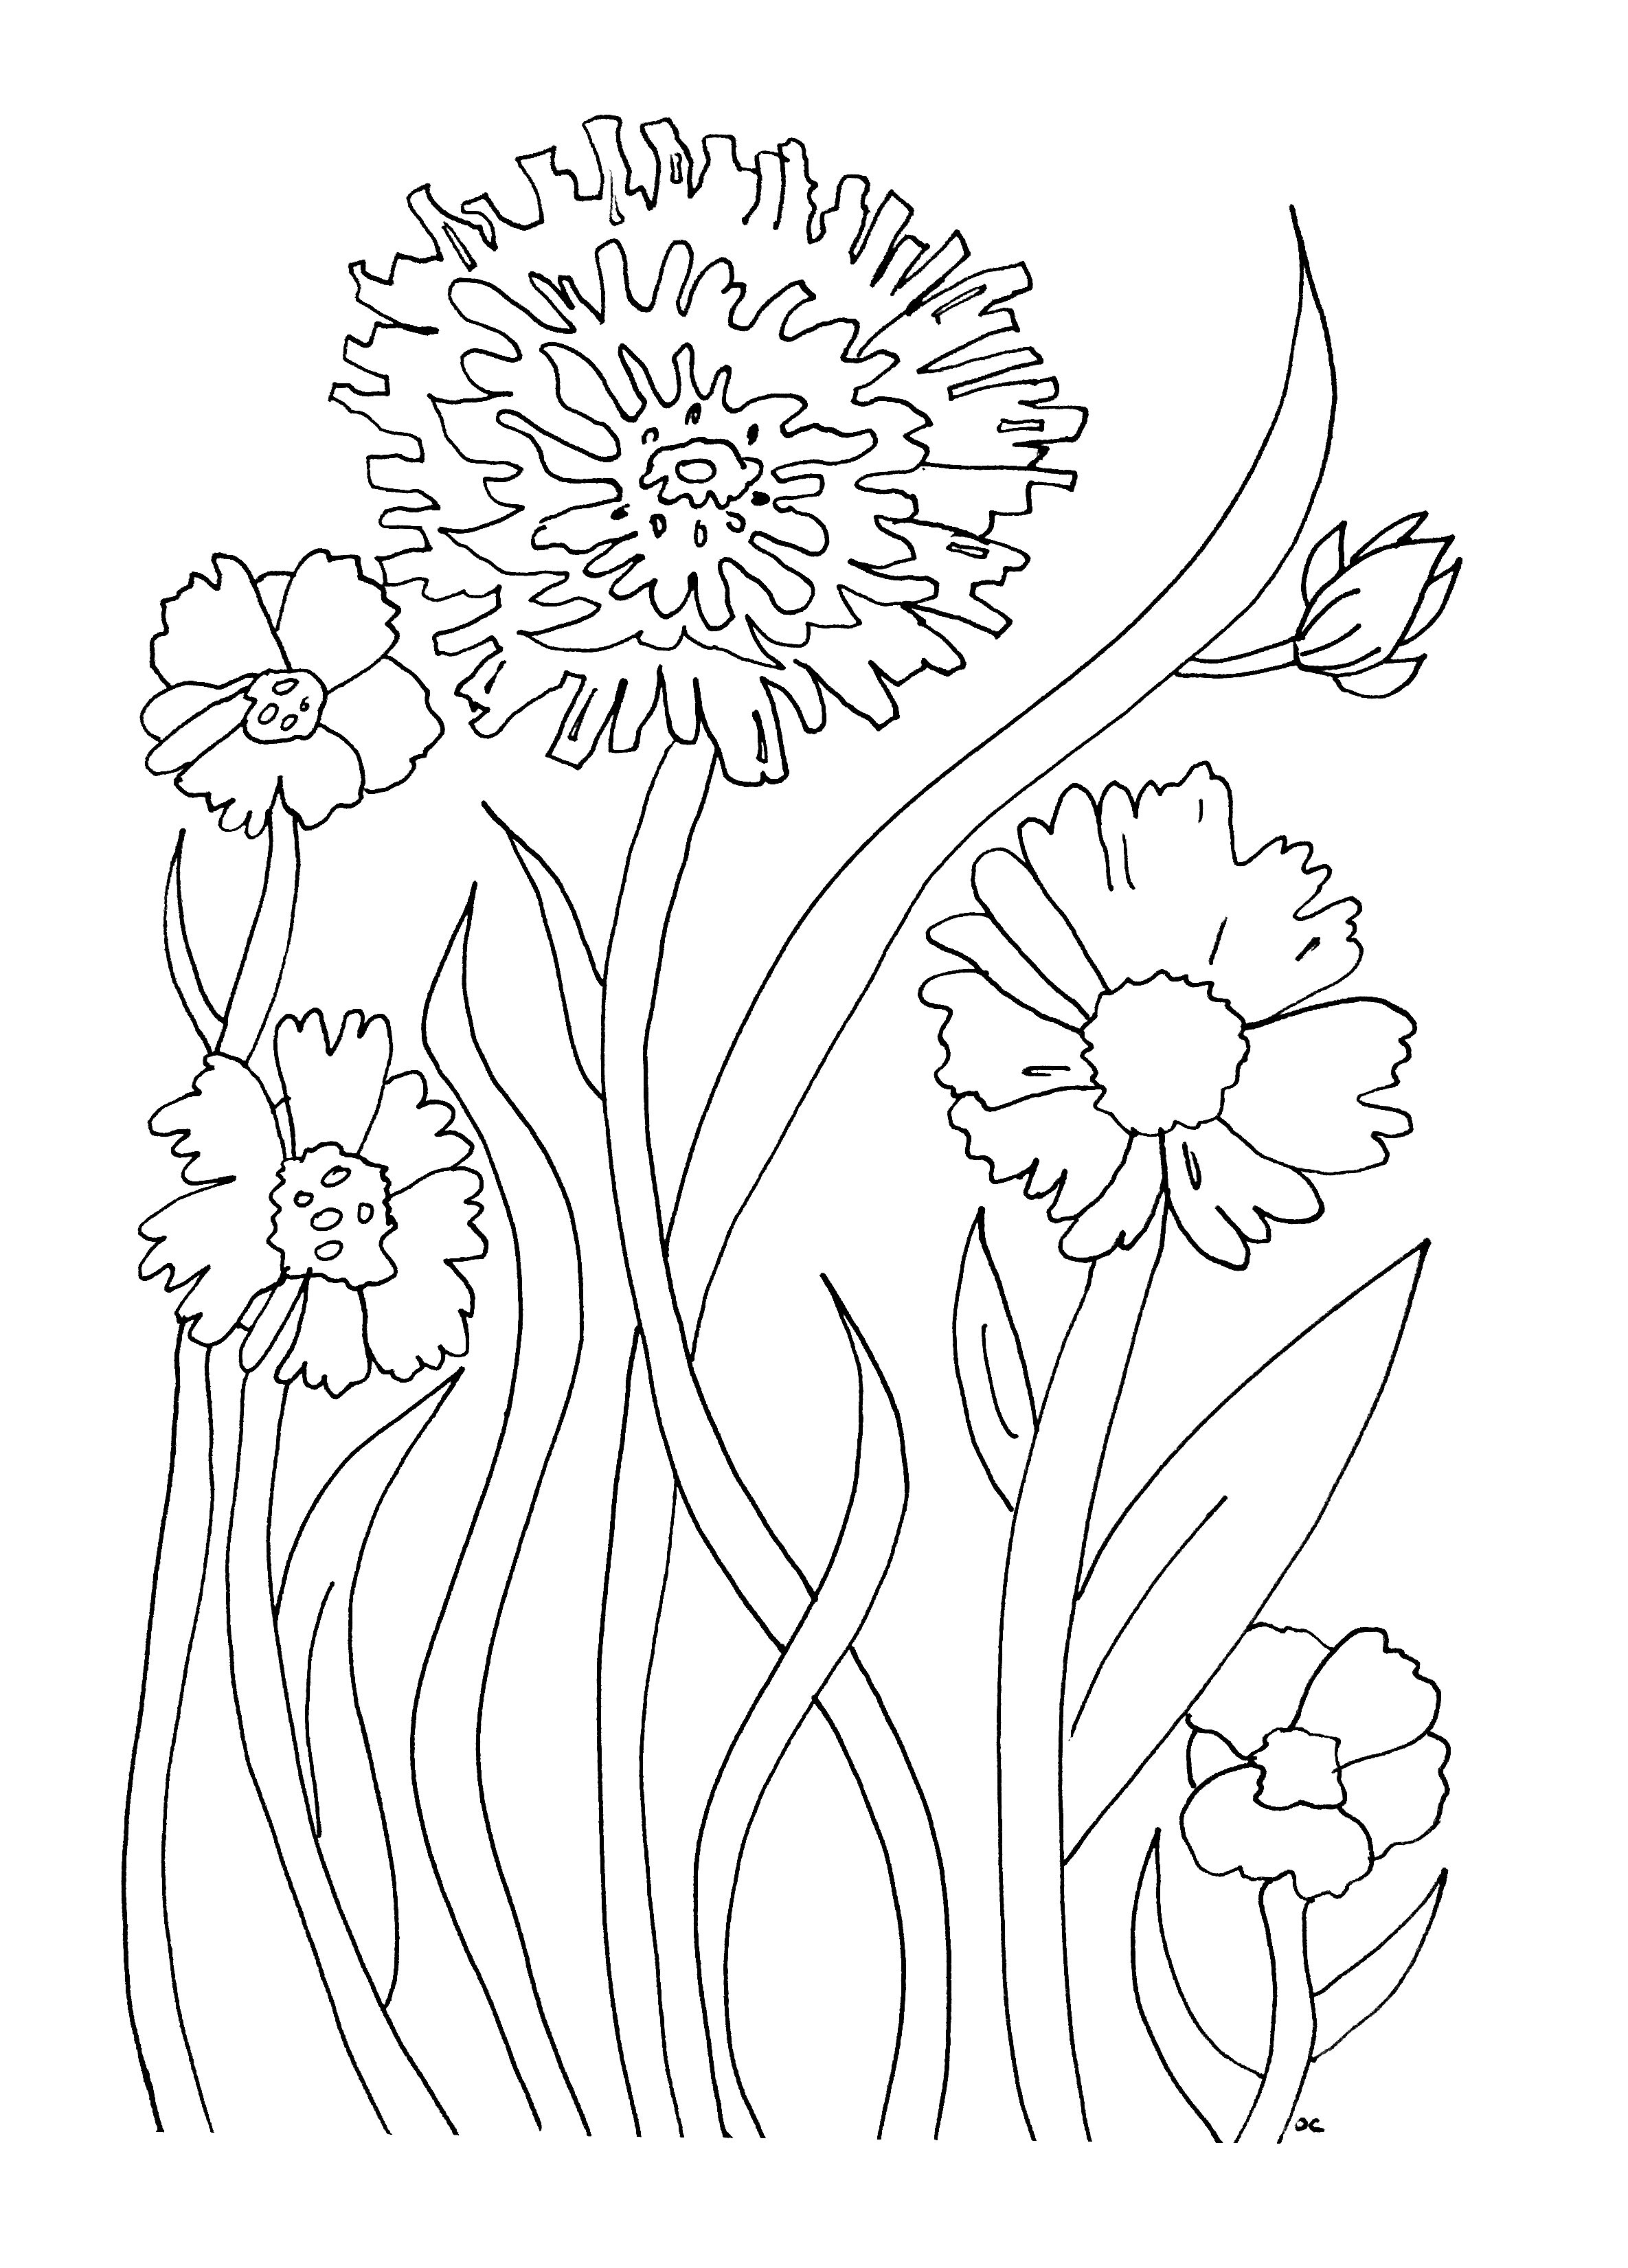 printable flowers coloring pages free printable flower coloring pages for kids best pages coloring printable flowers 1 1